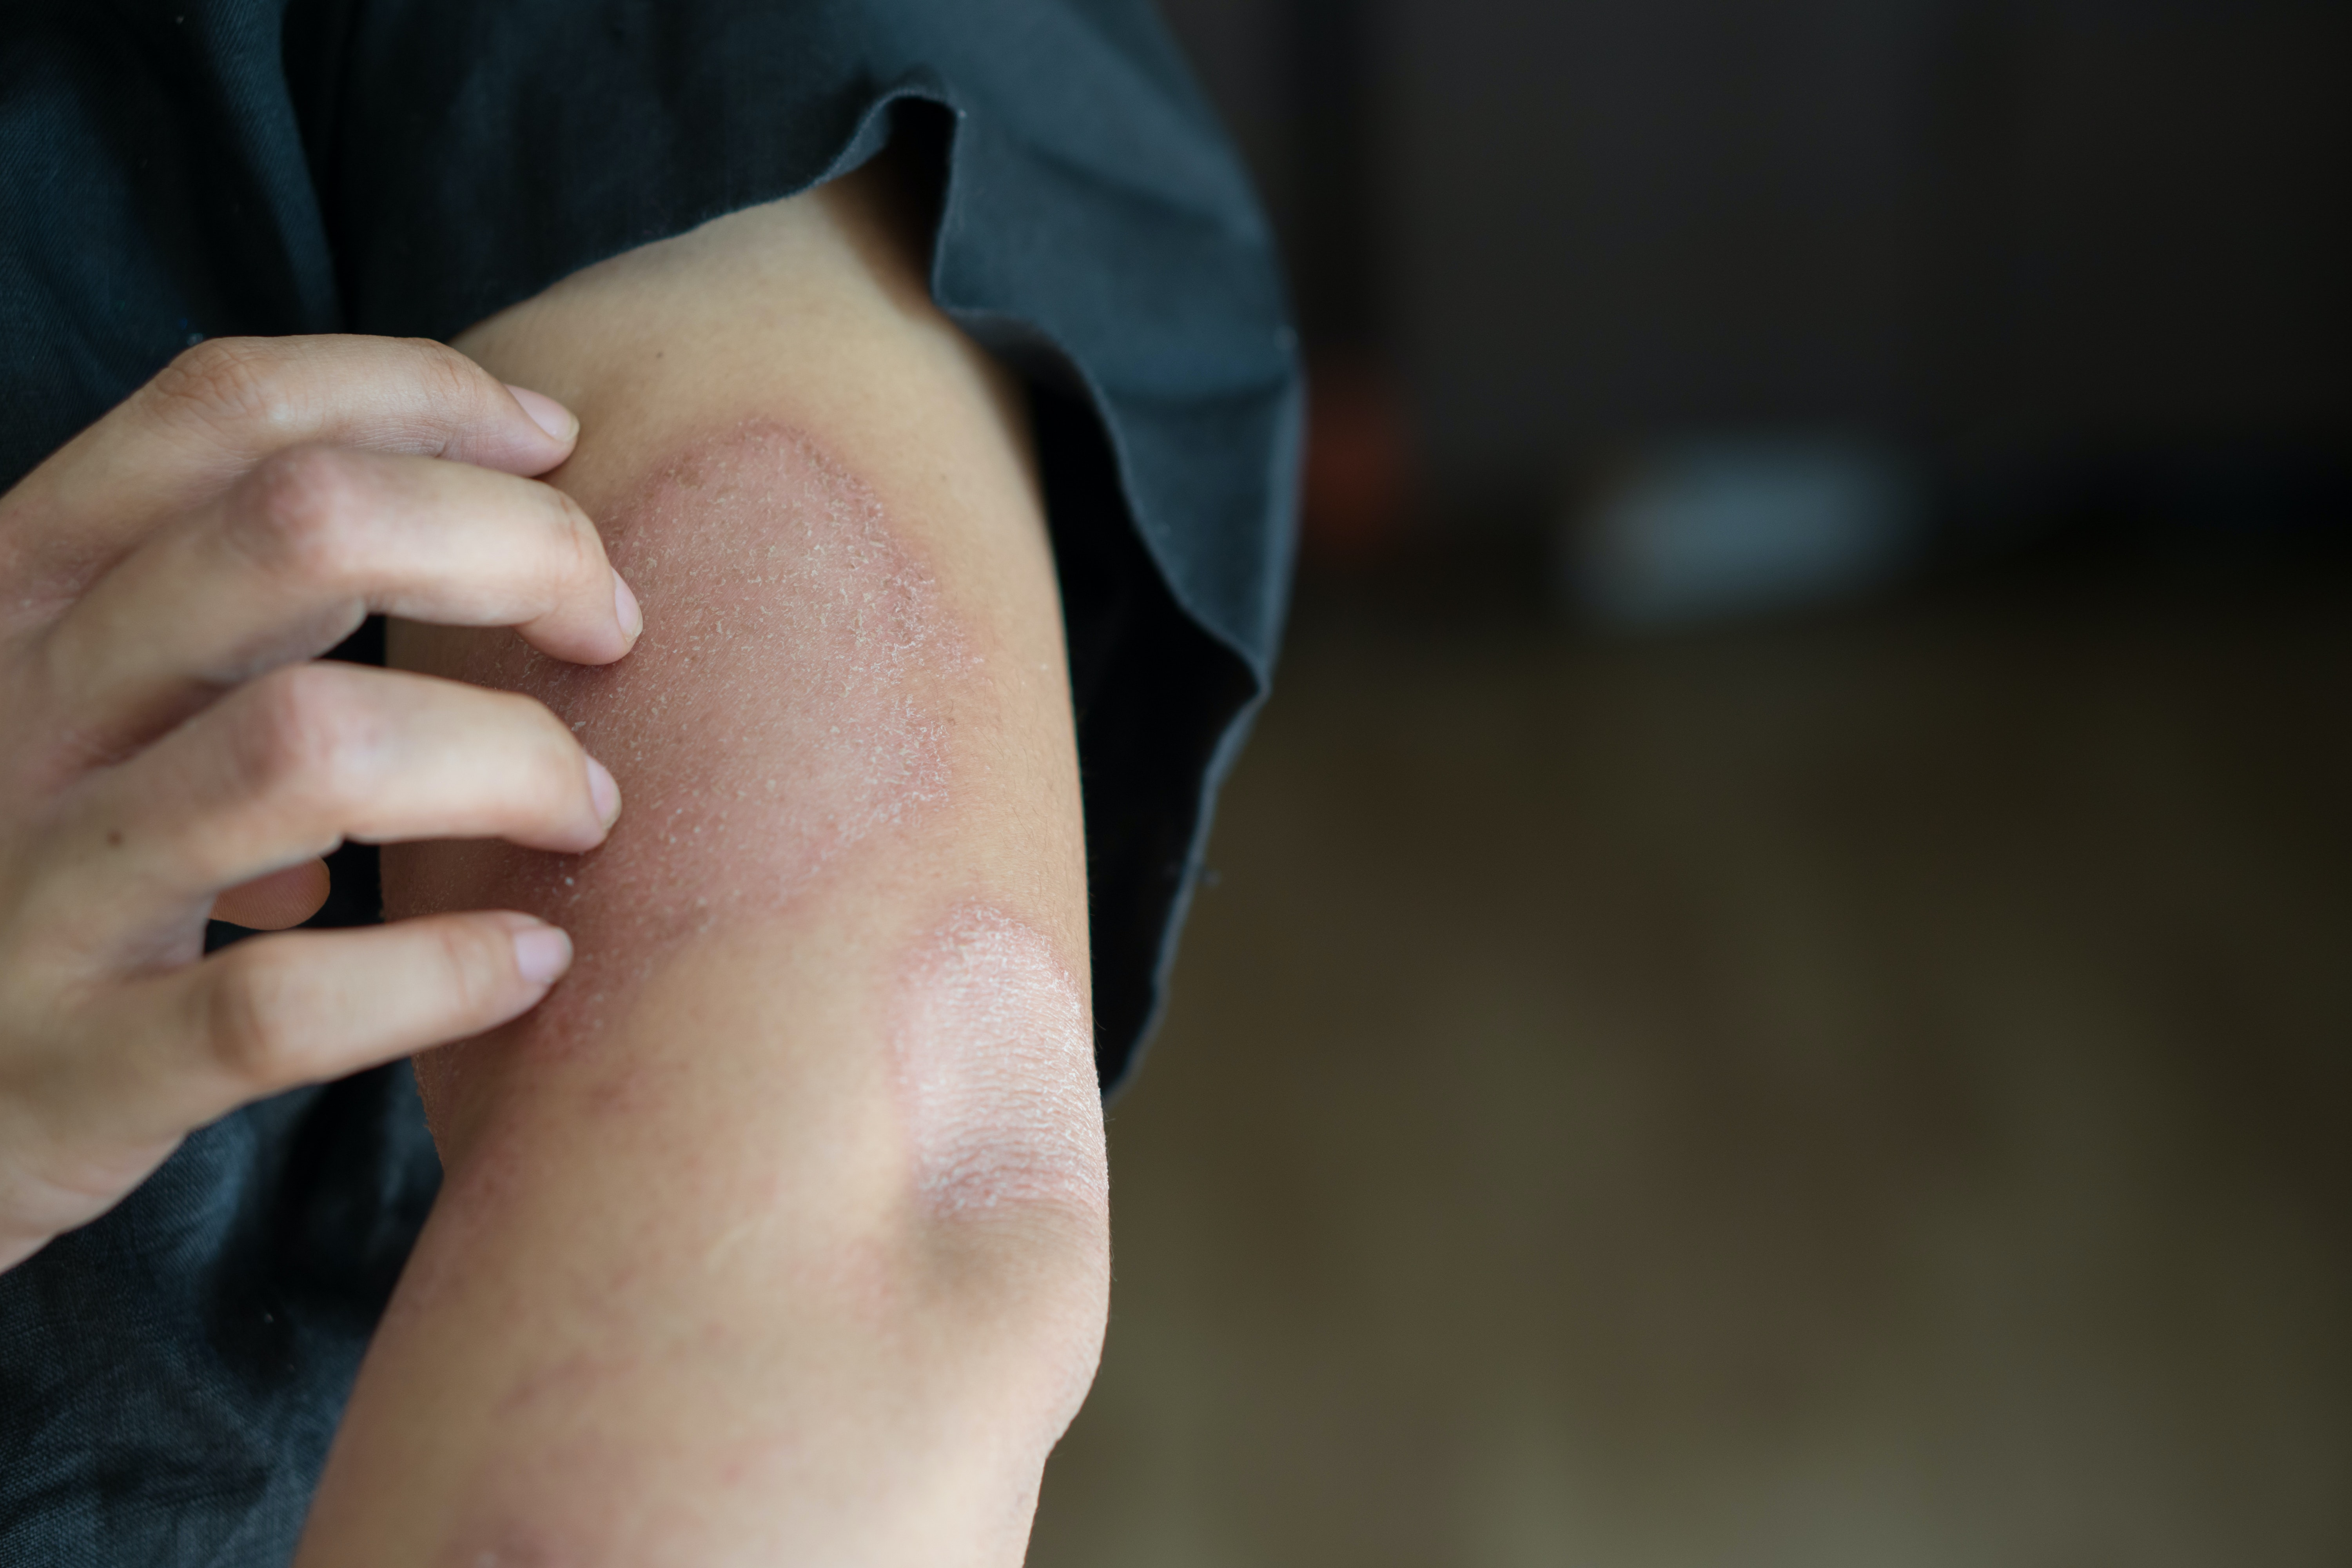 An image depicting a person suffering from painless arm bump symptoms